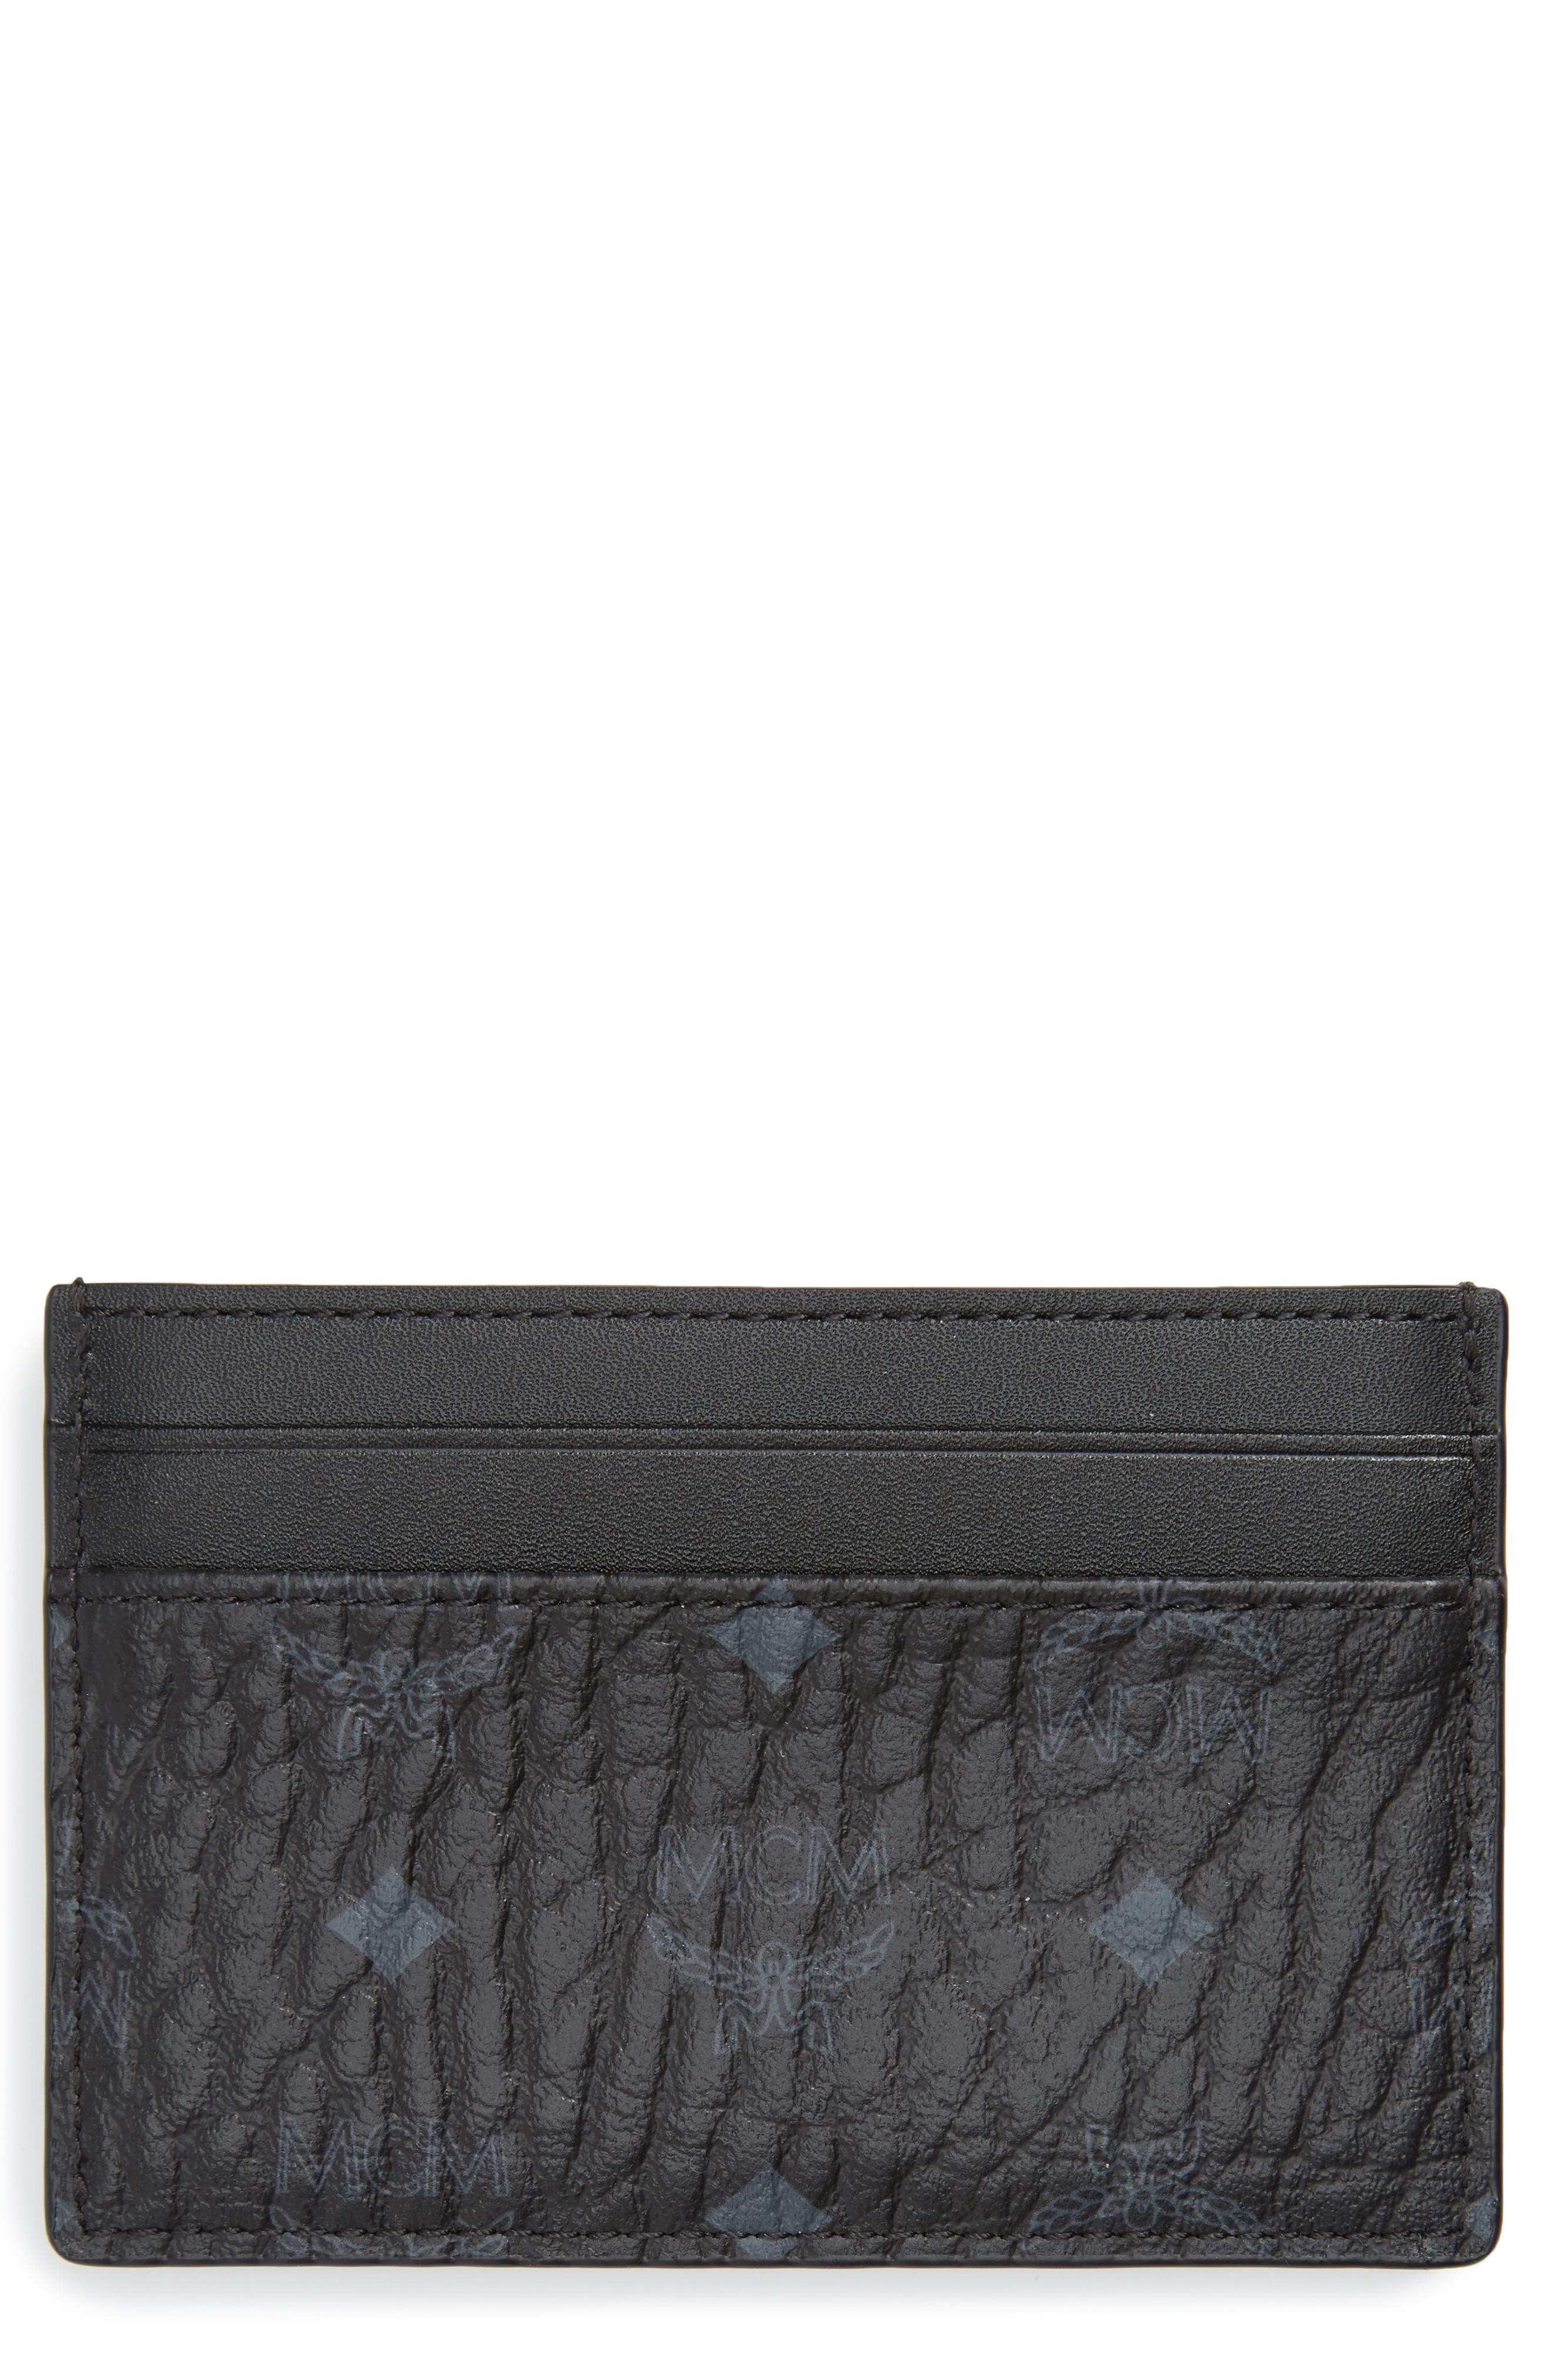 Logo Leather Card Case,                             Main thumbnail 1, color,                             BLACK